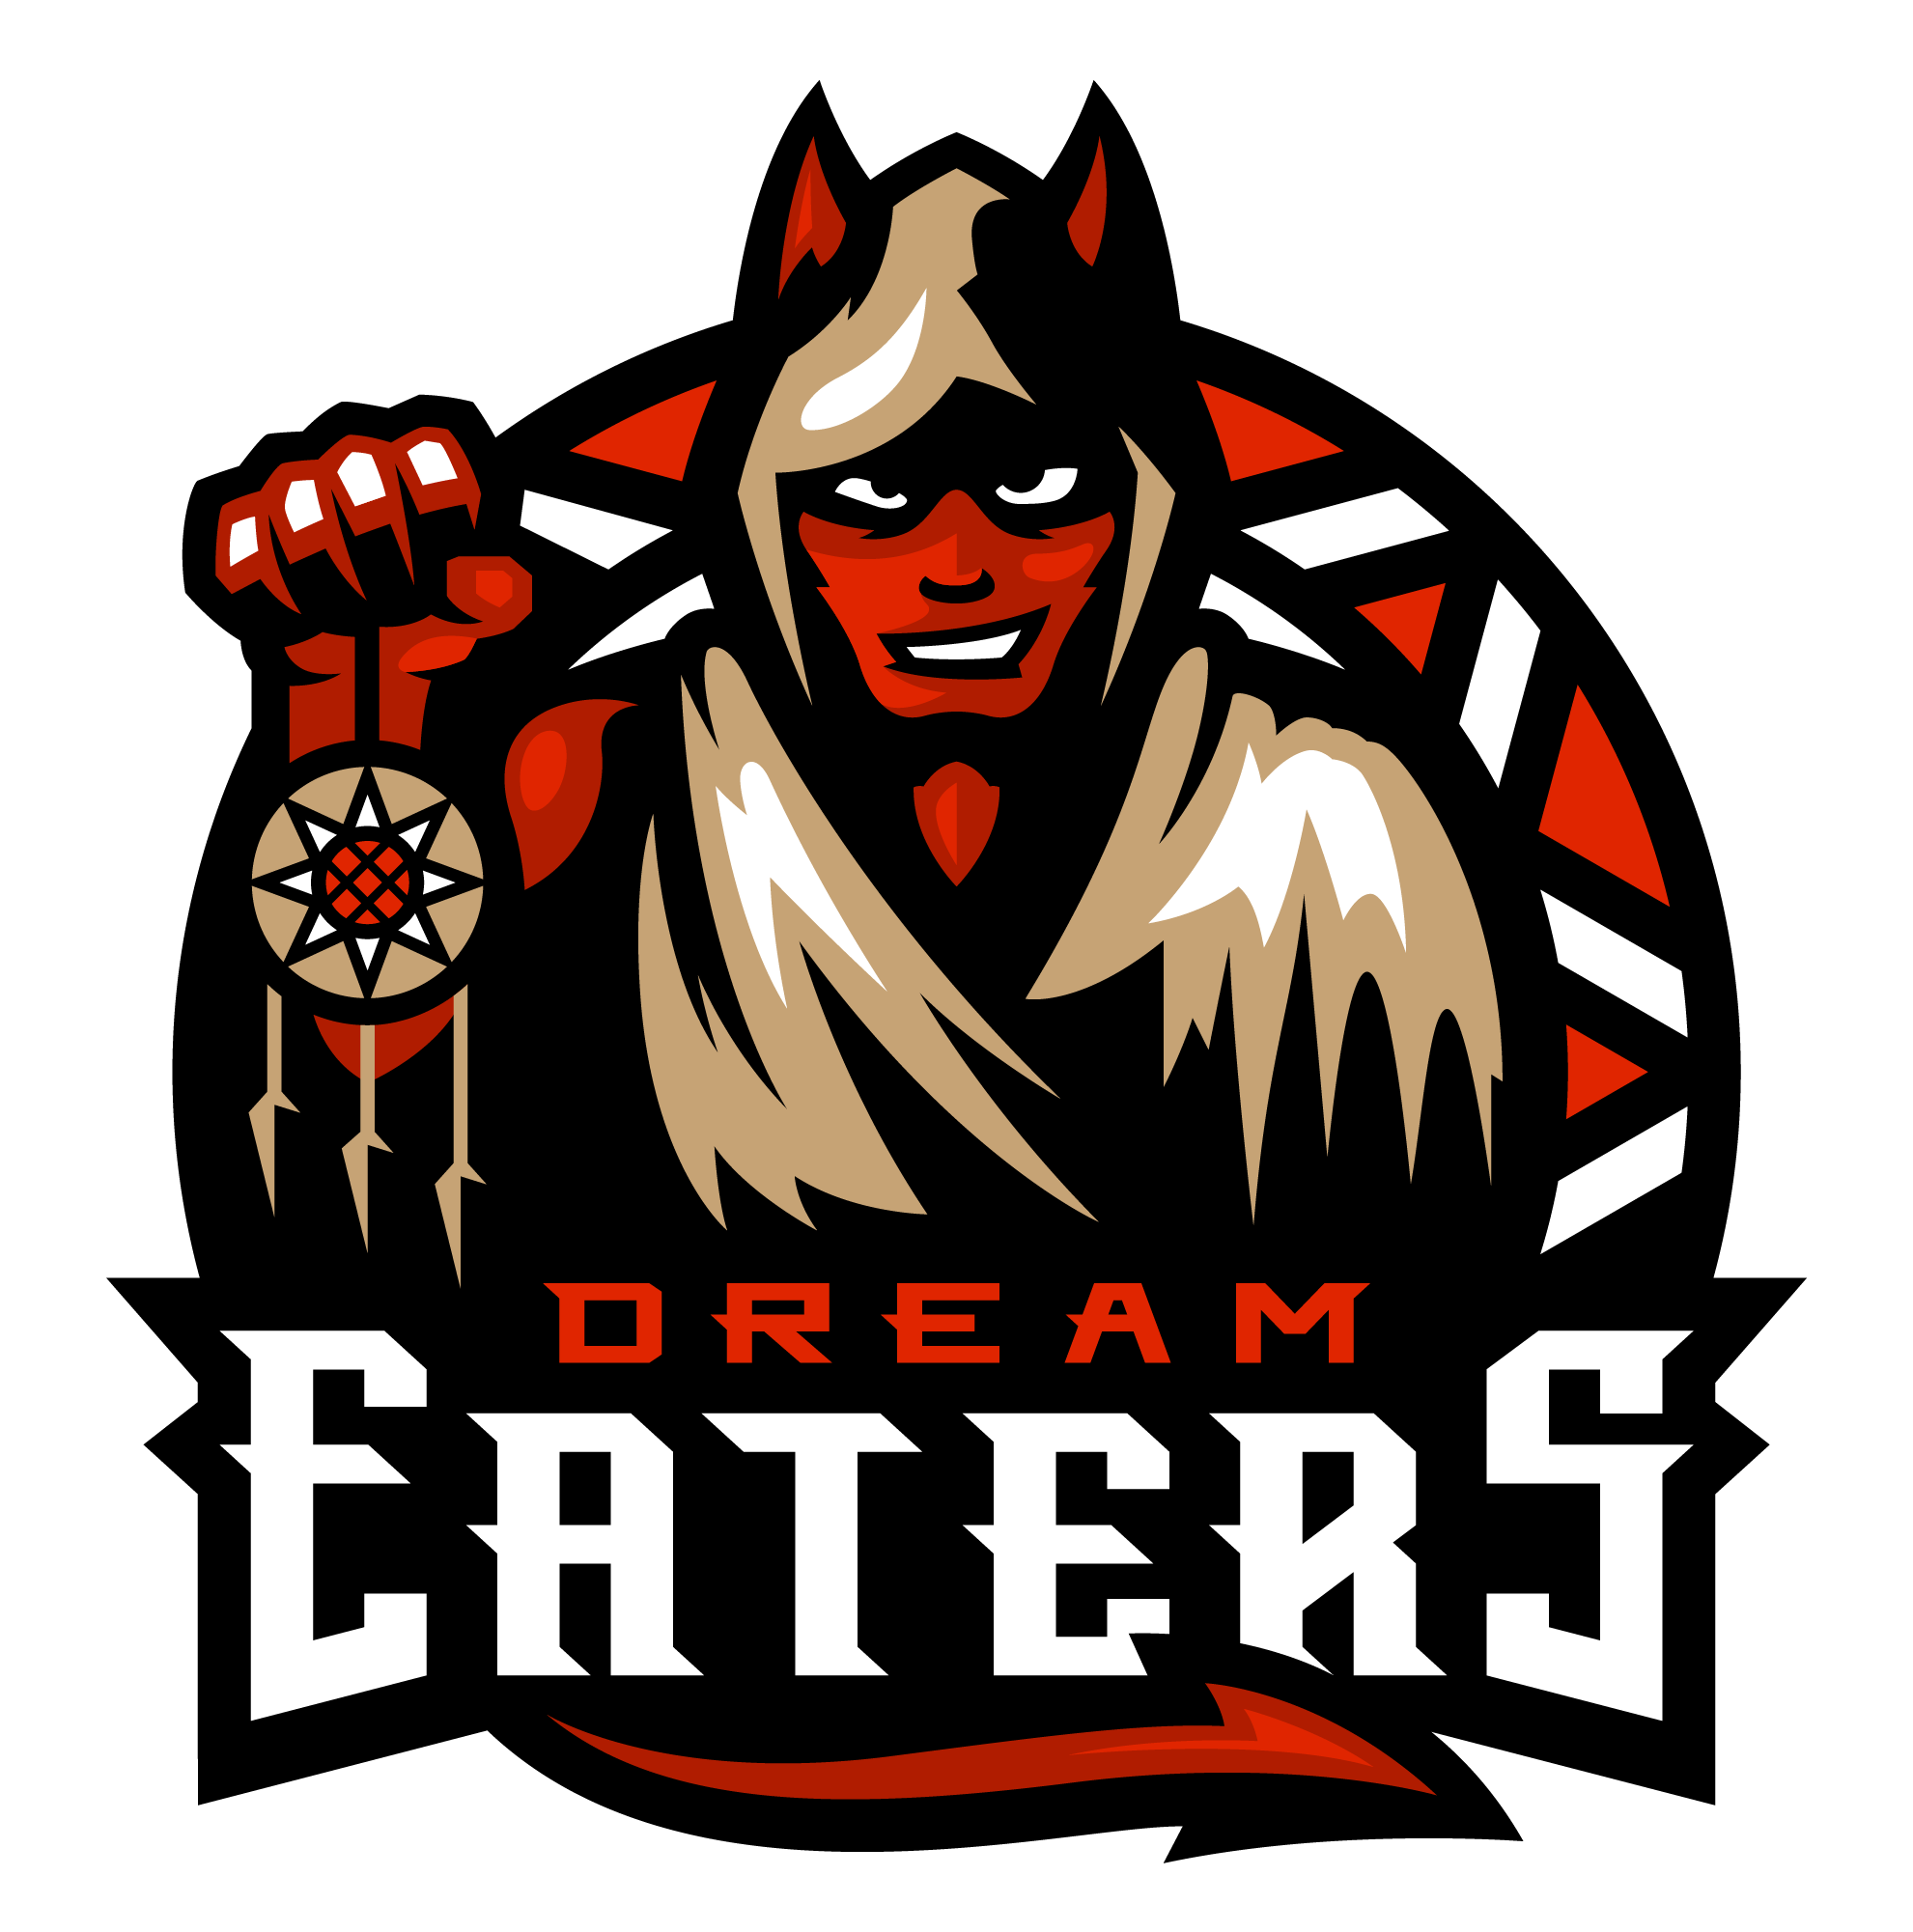 DreamEaters CS:GO Team